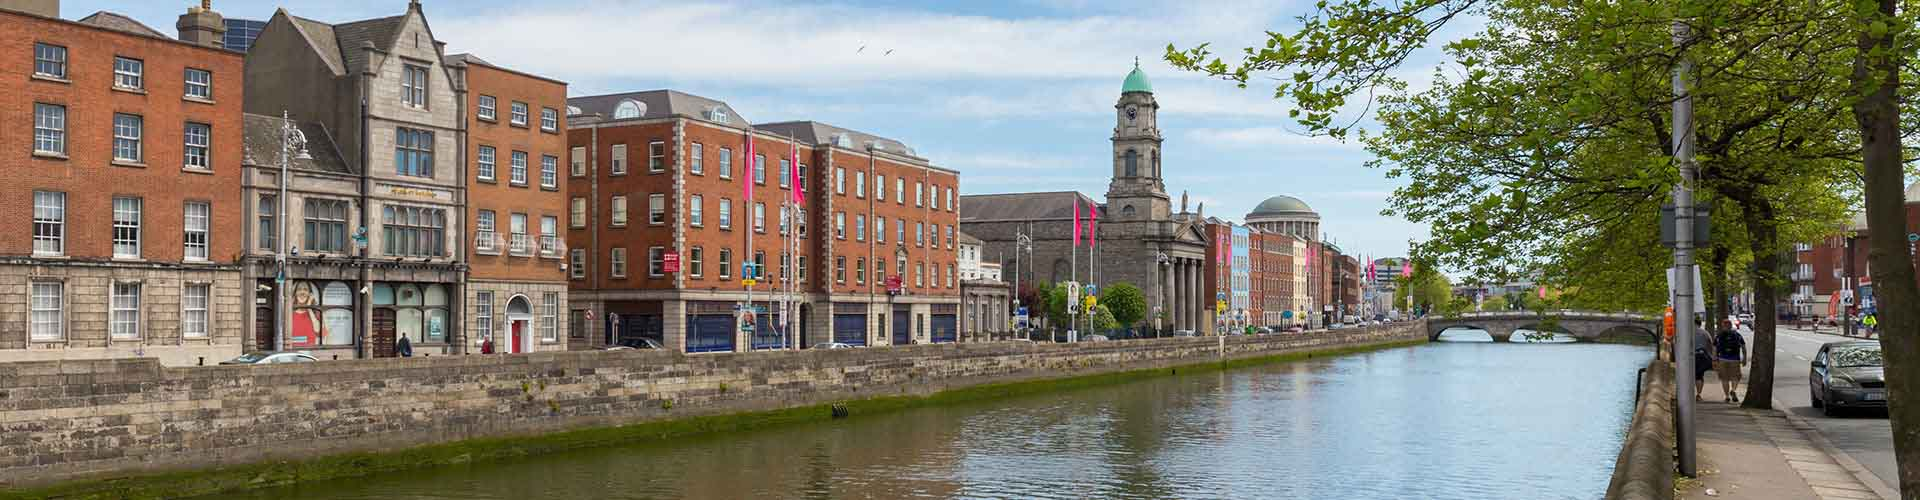 Dublin – Hotels close to City Center. Maps of Dublin, Photos and Reviews for each Hotel in Dublin.